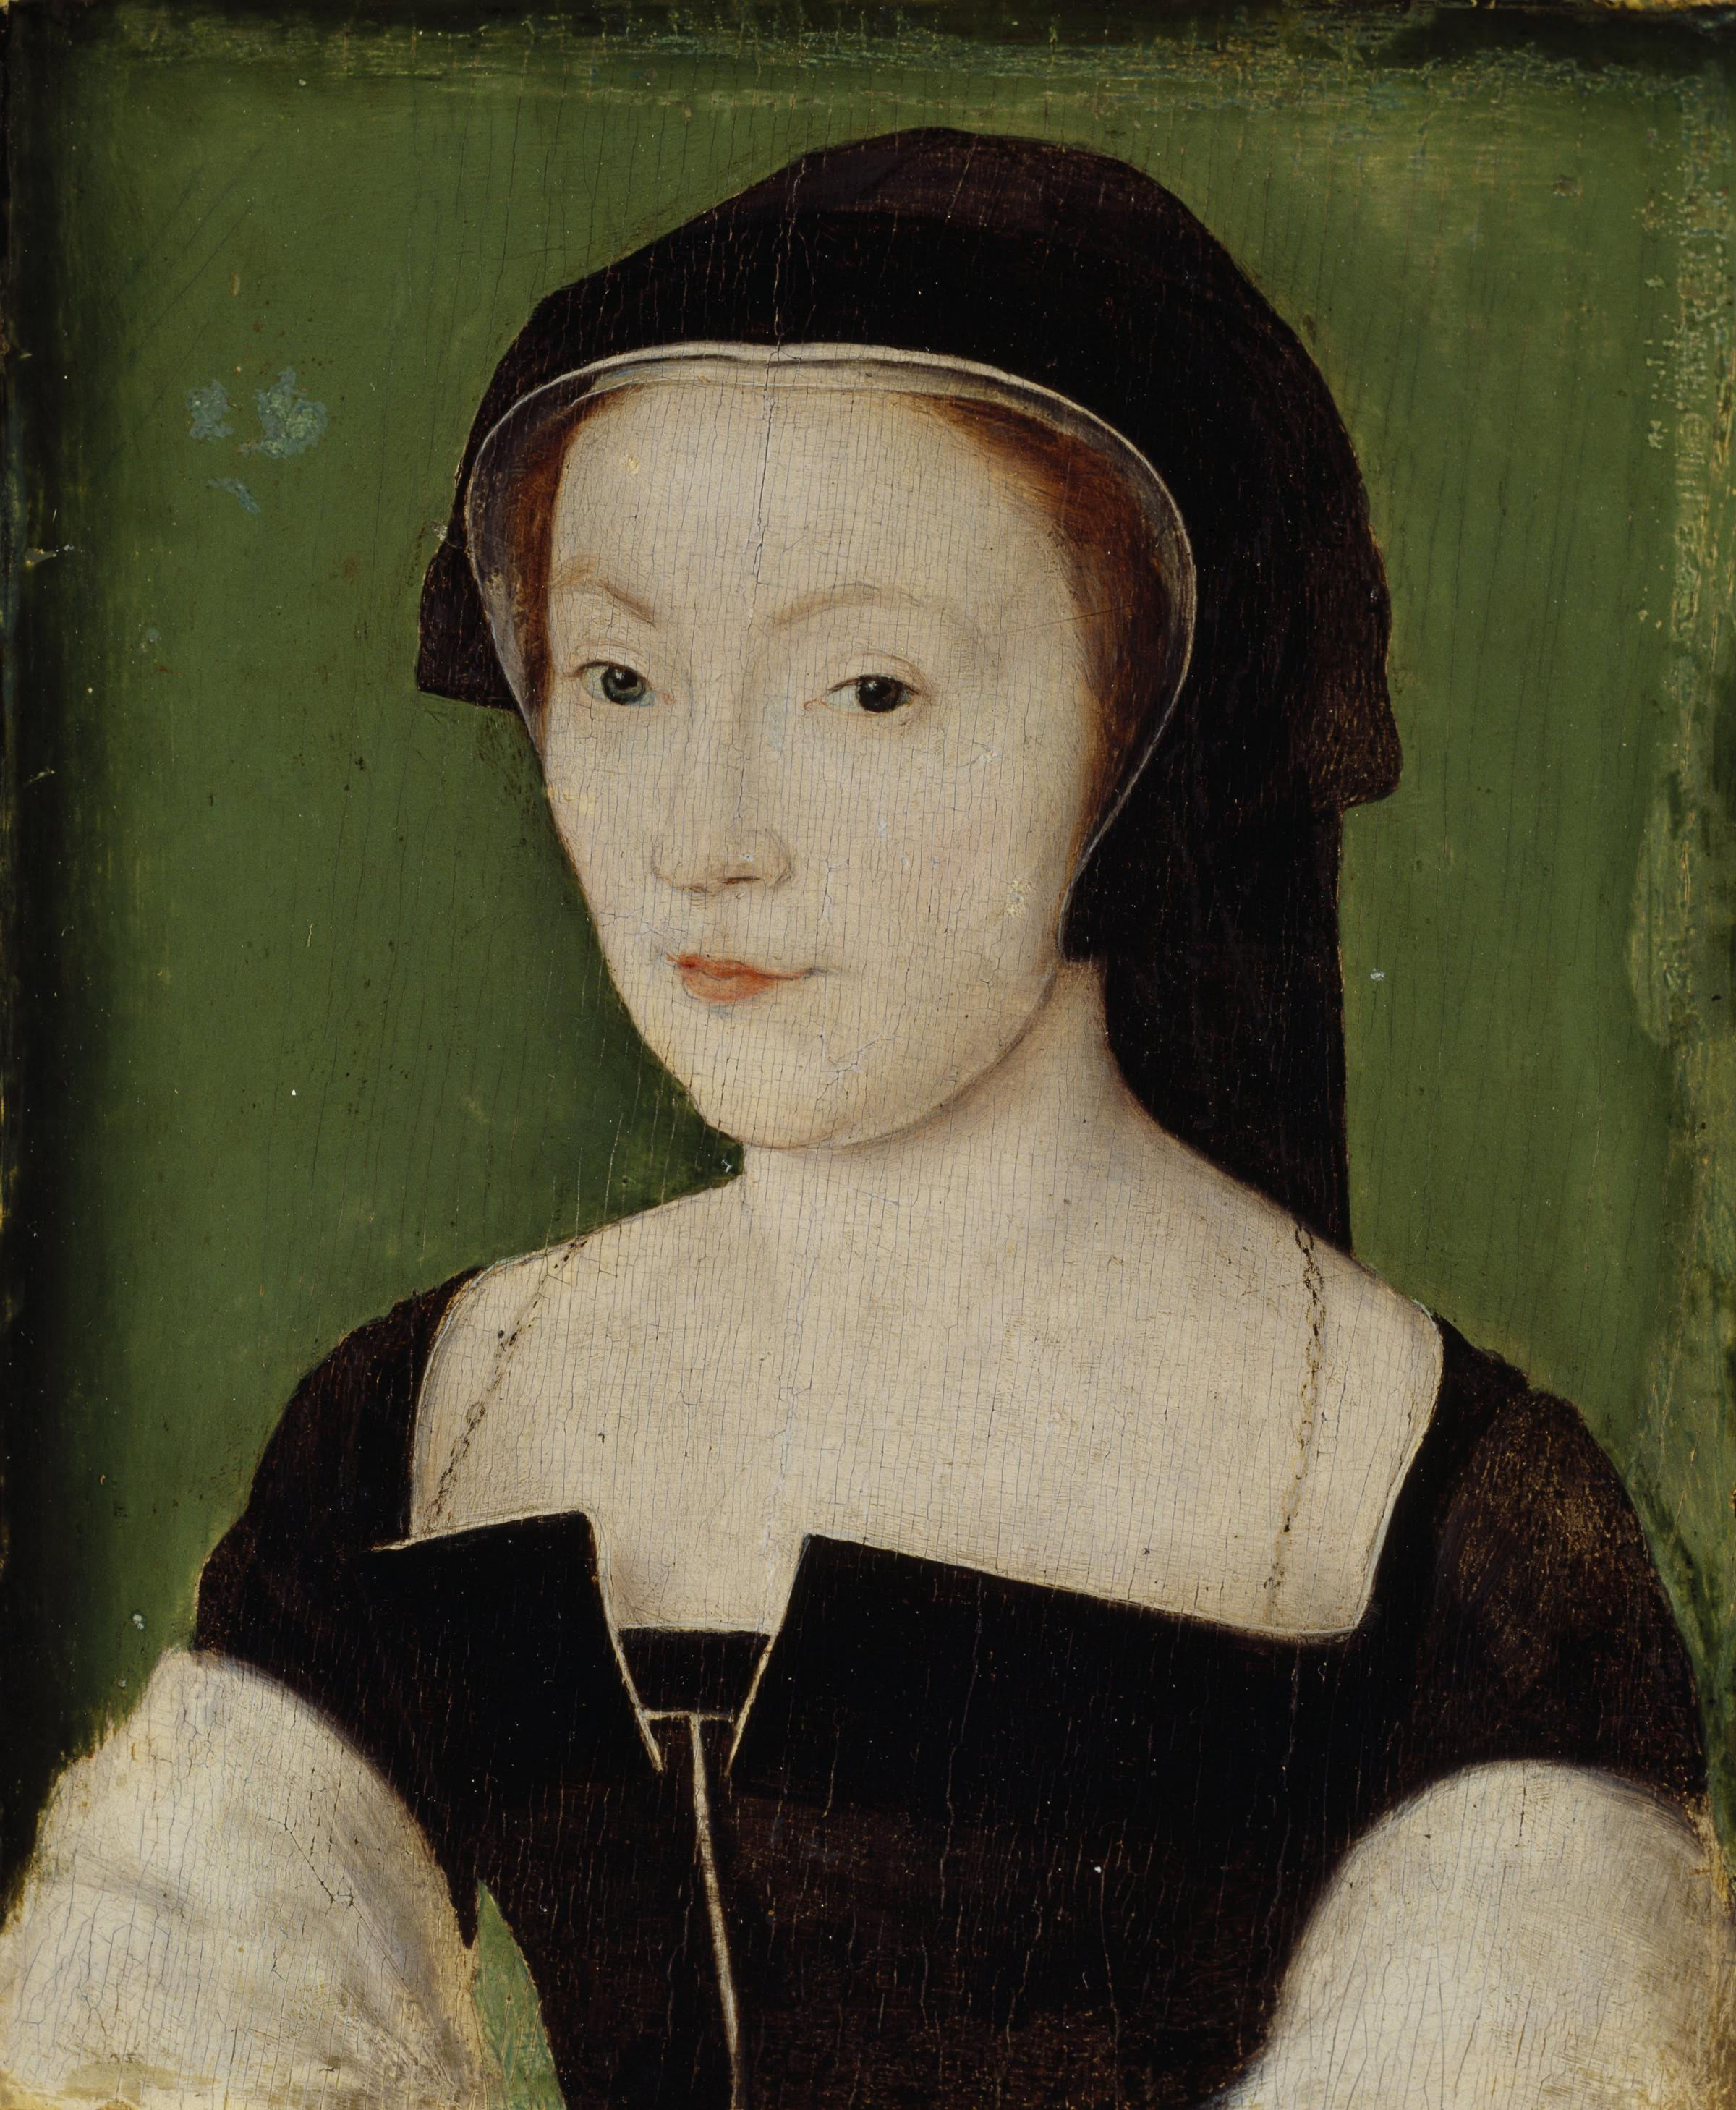 Marie de Guise: Scotland's other 'Queen' of the 16th century